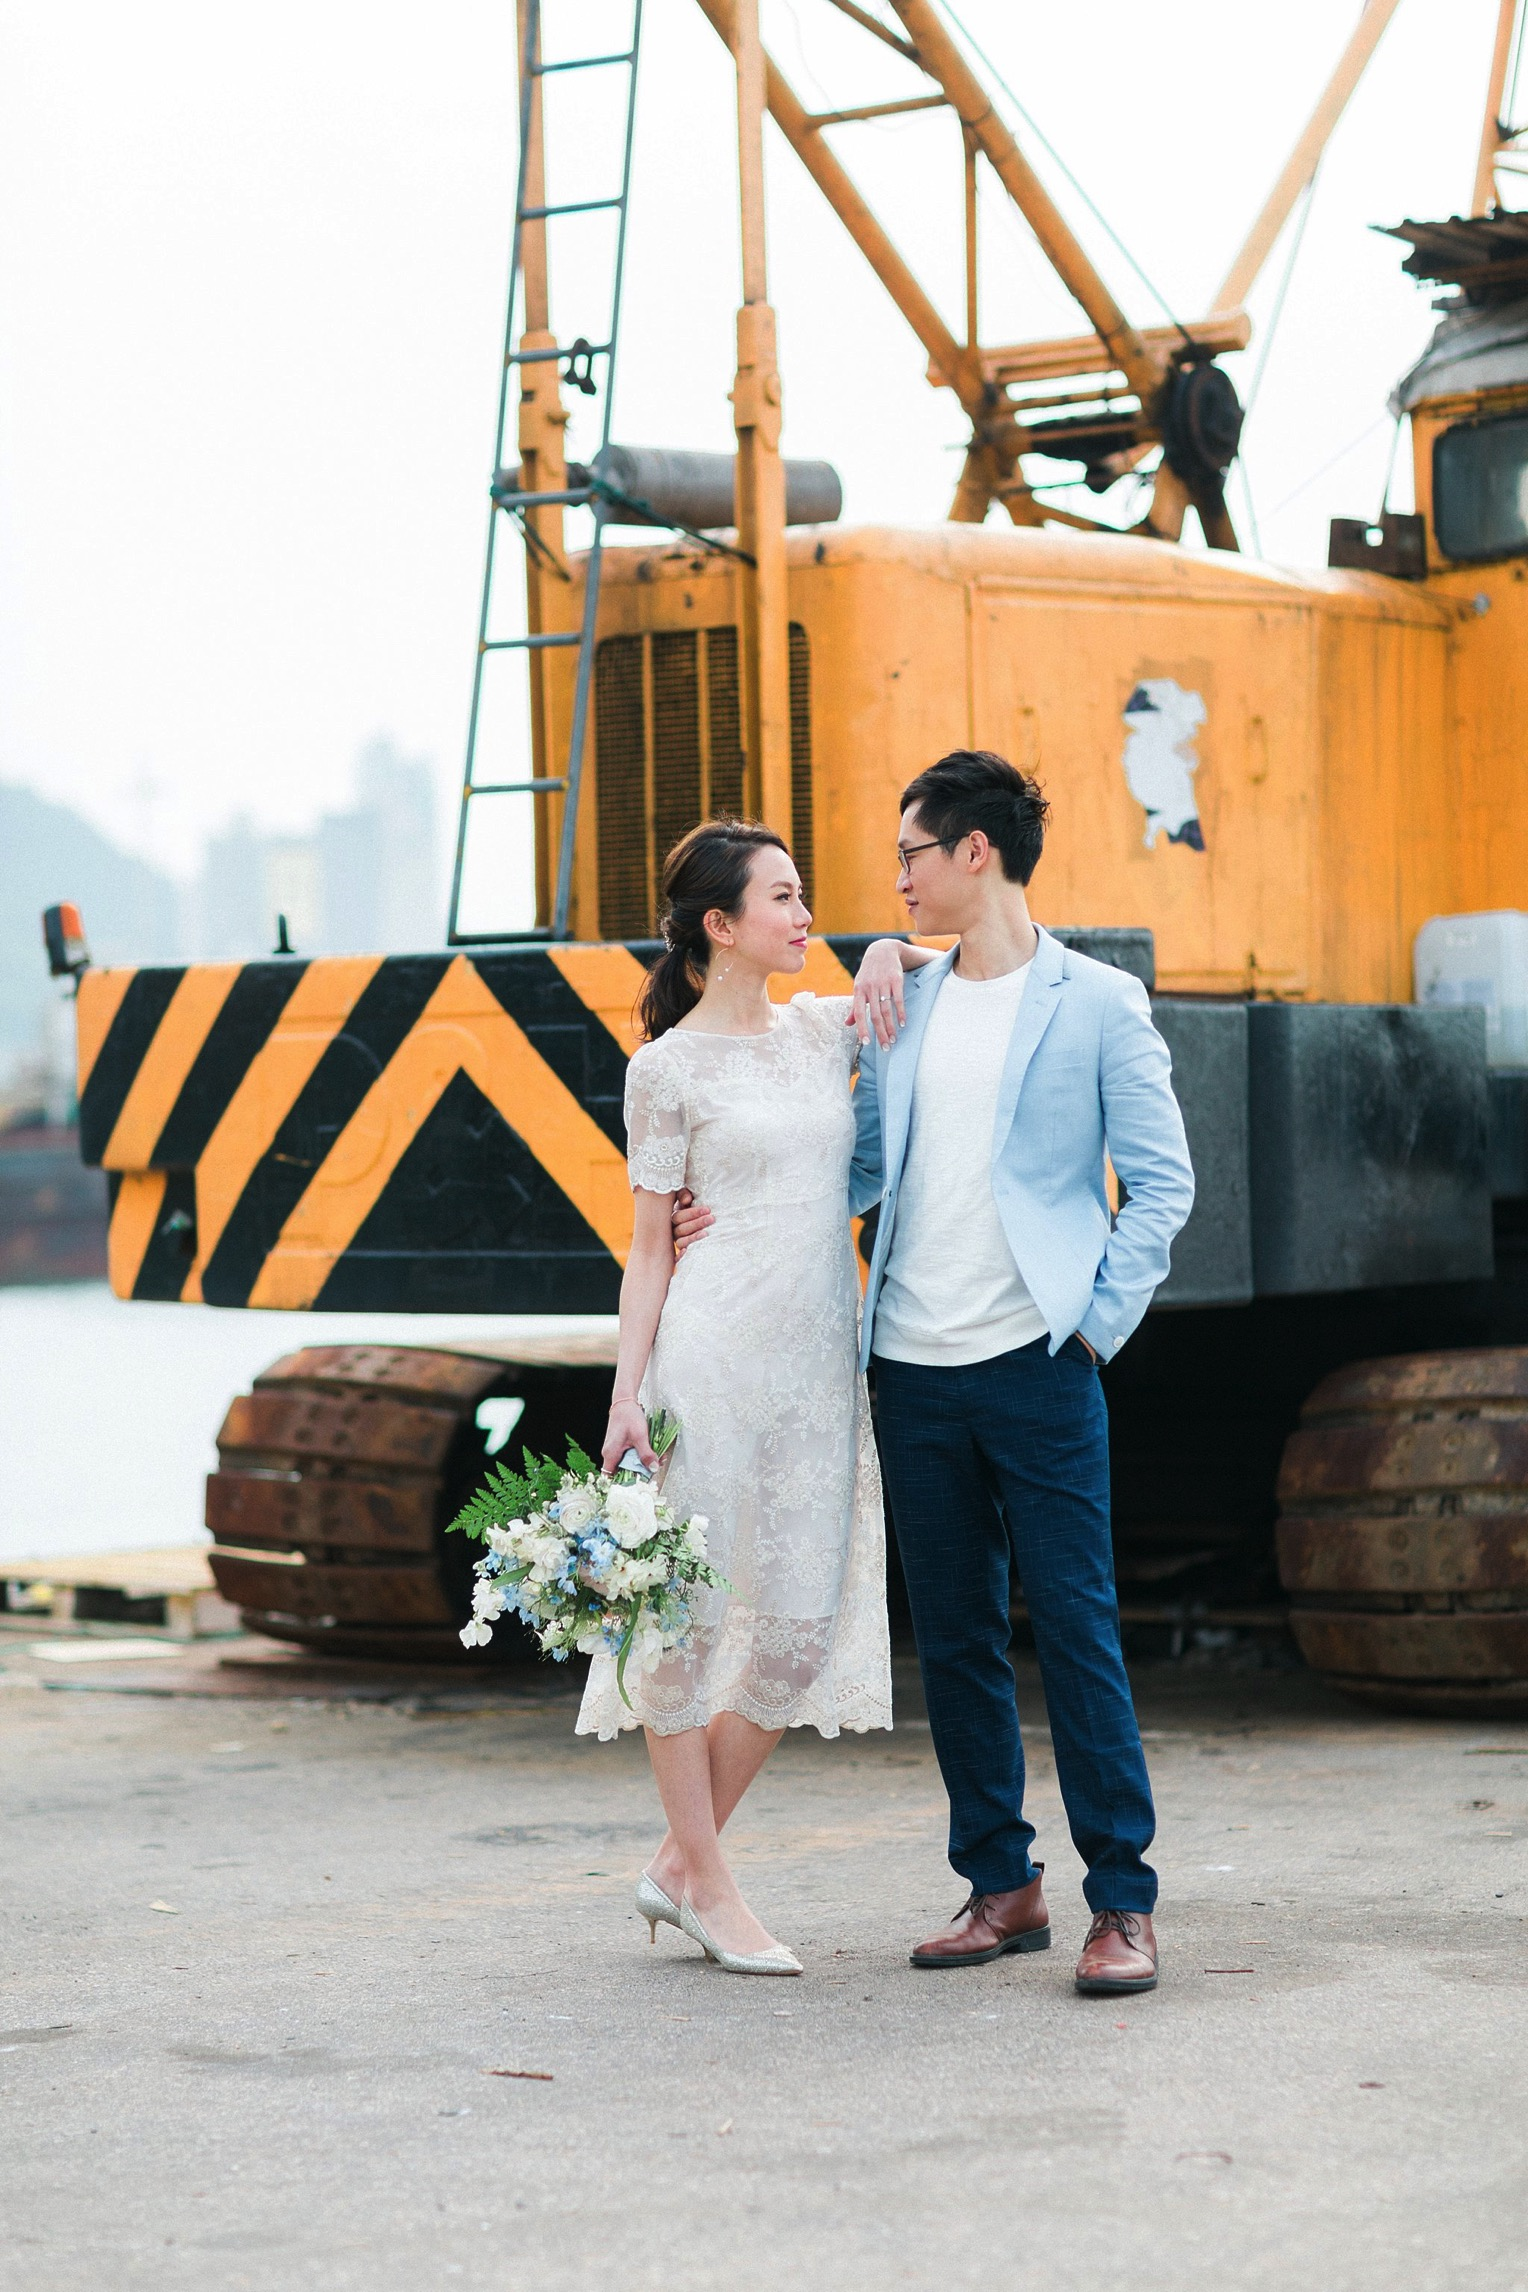 French Grey Photography Hong Kong Prewedding156